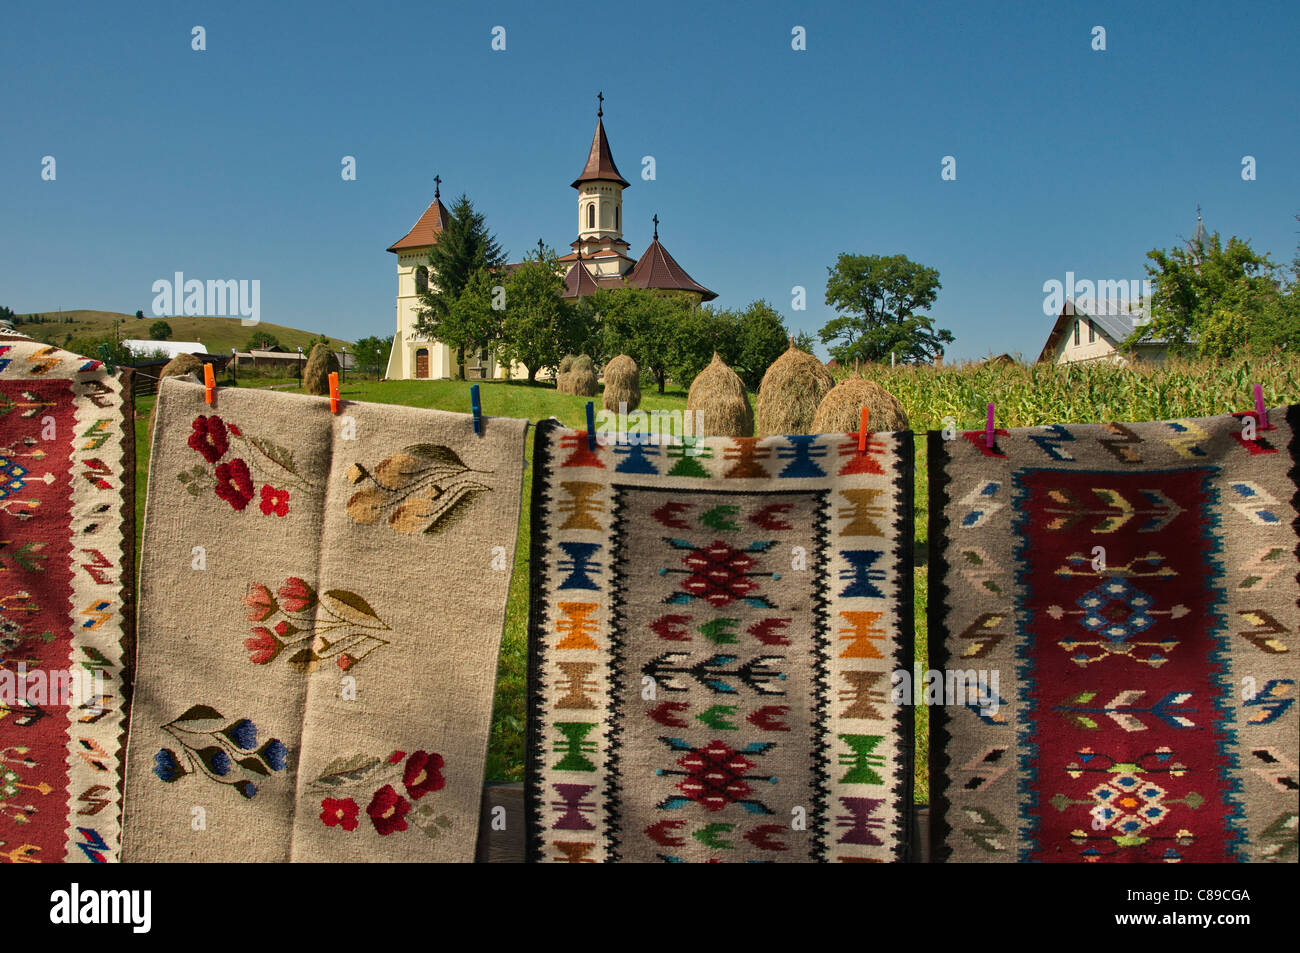 Traditional landscape of a church and handmade carpets in Moldova, Romania - Stock Image